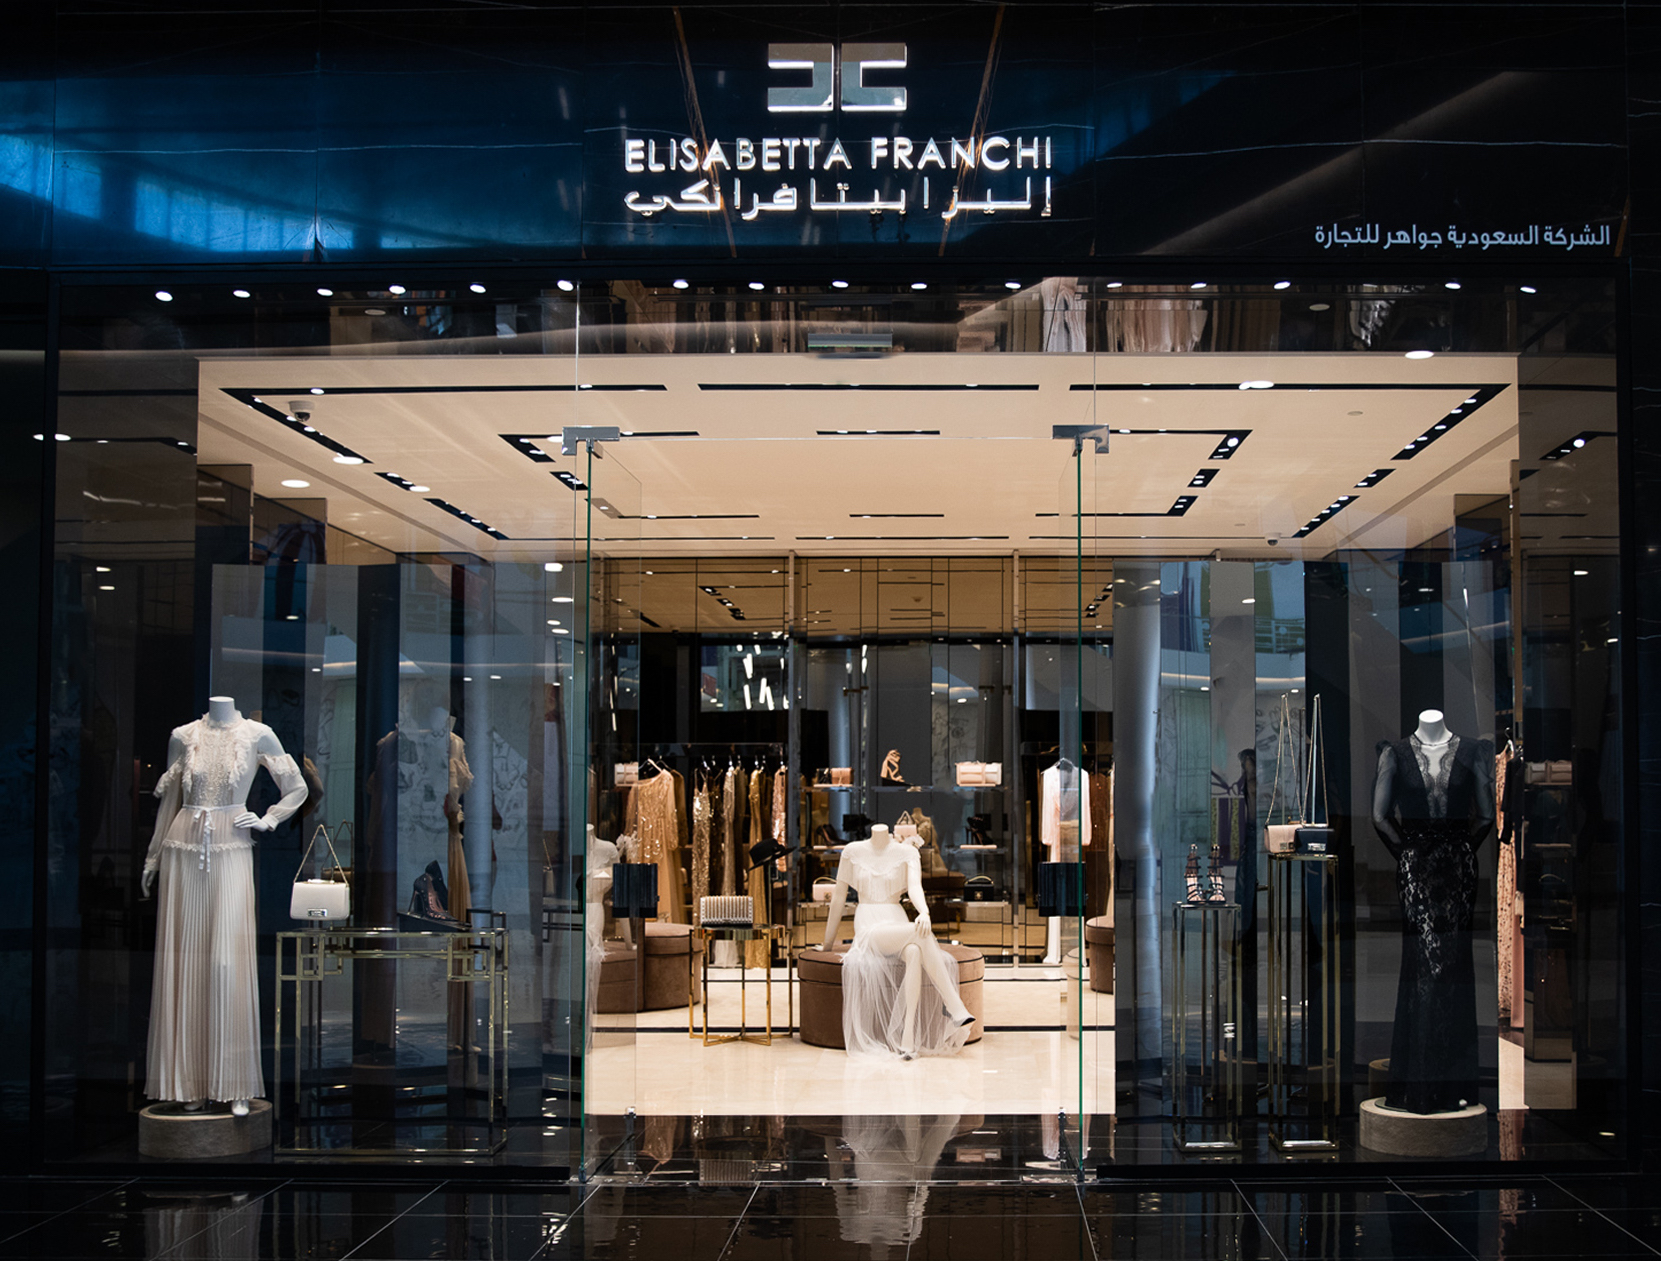 Elisabetta Franchi Boutique: the latest openings all over the world